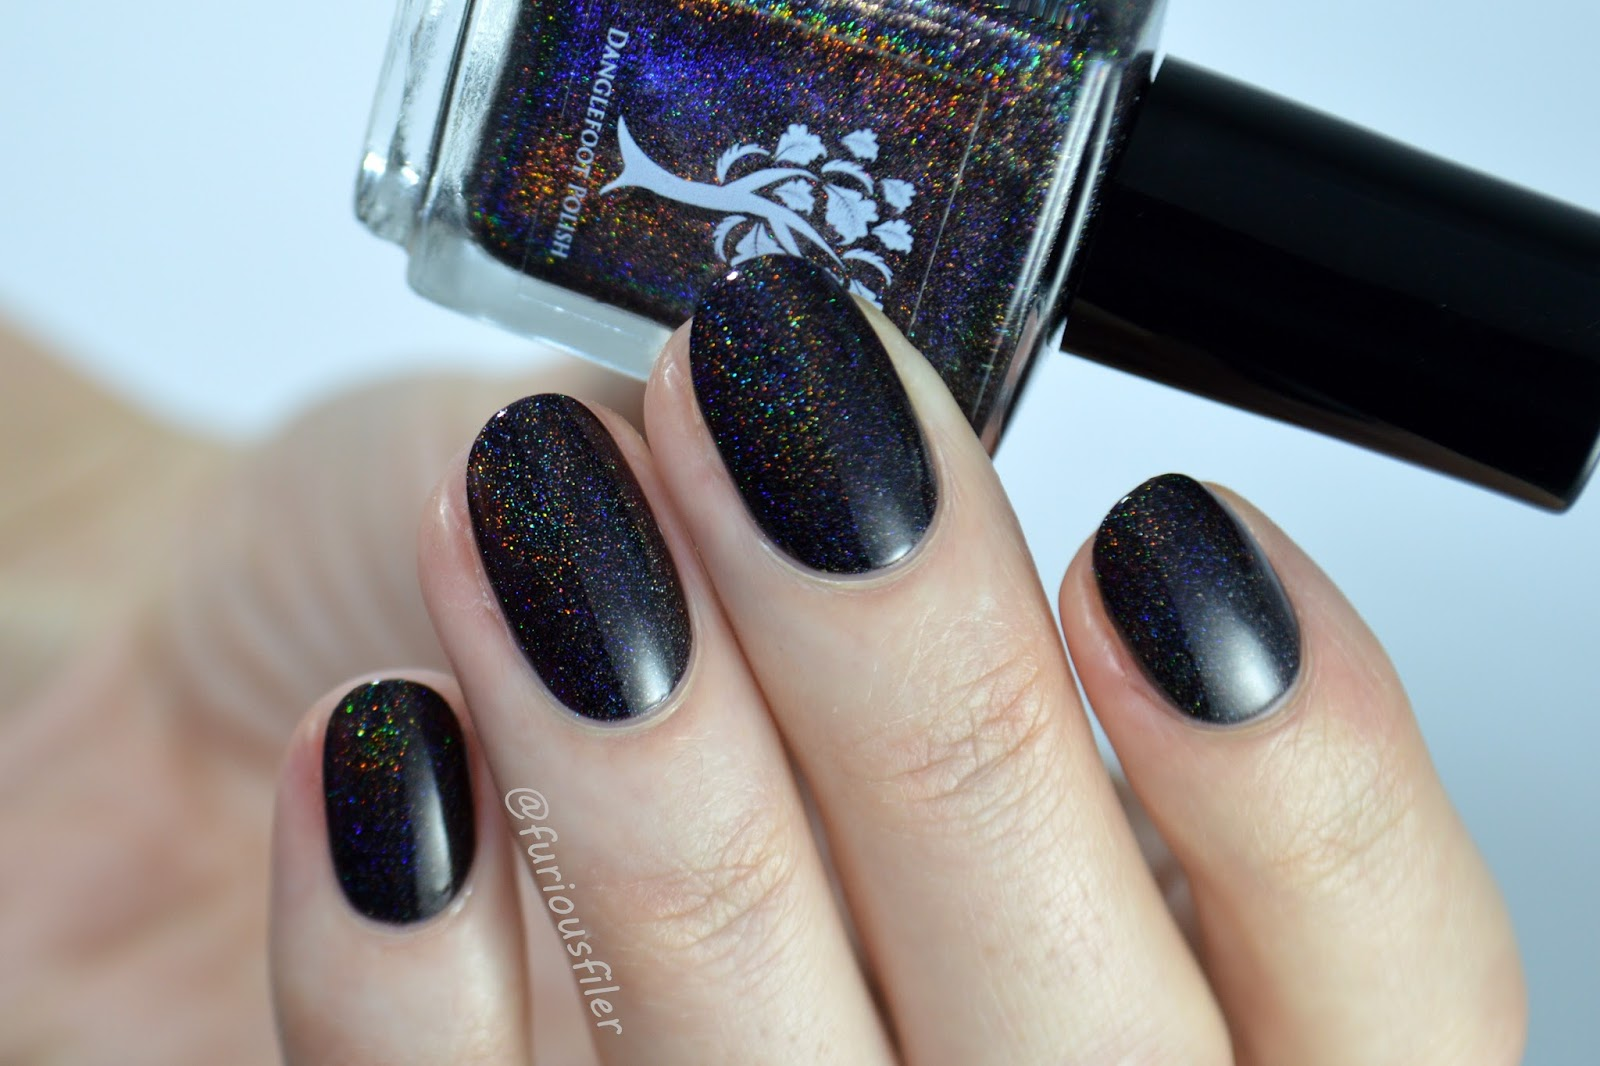 Ririmee meebox review and badass nail art furious filer review furious filer higitis figitis swatch meebox swatch prinsesfo Images